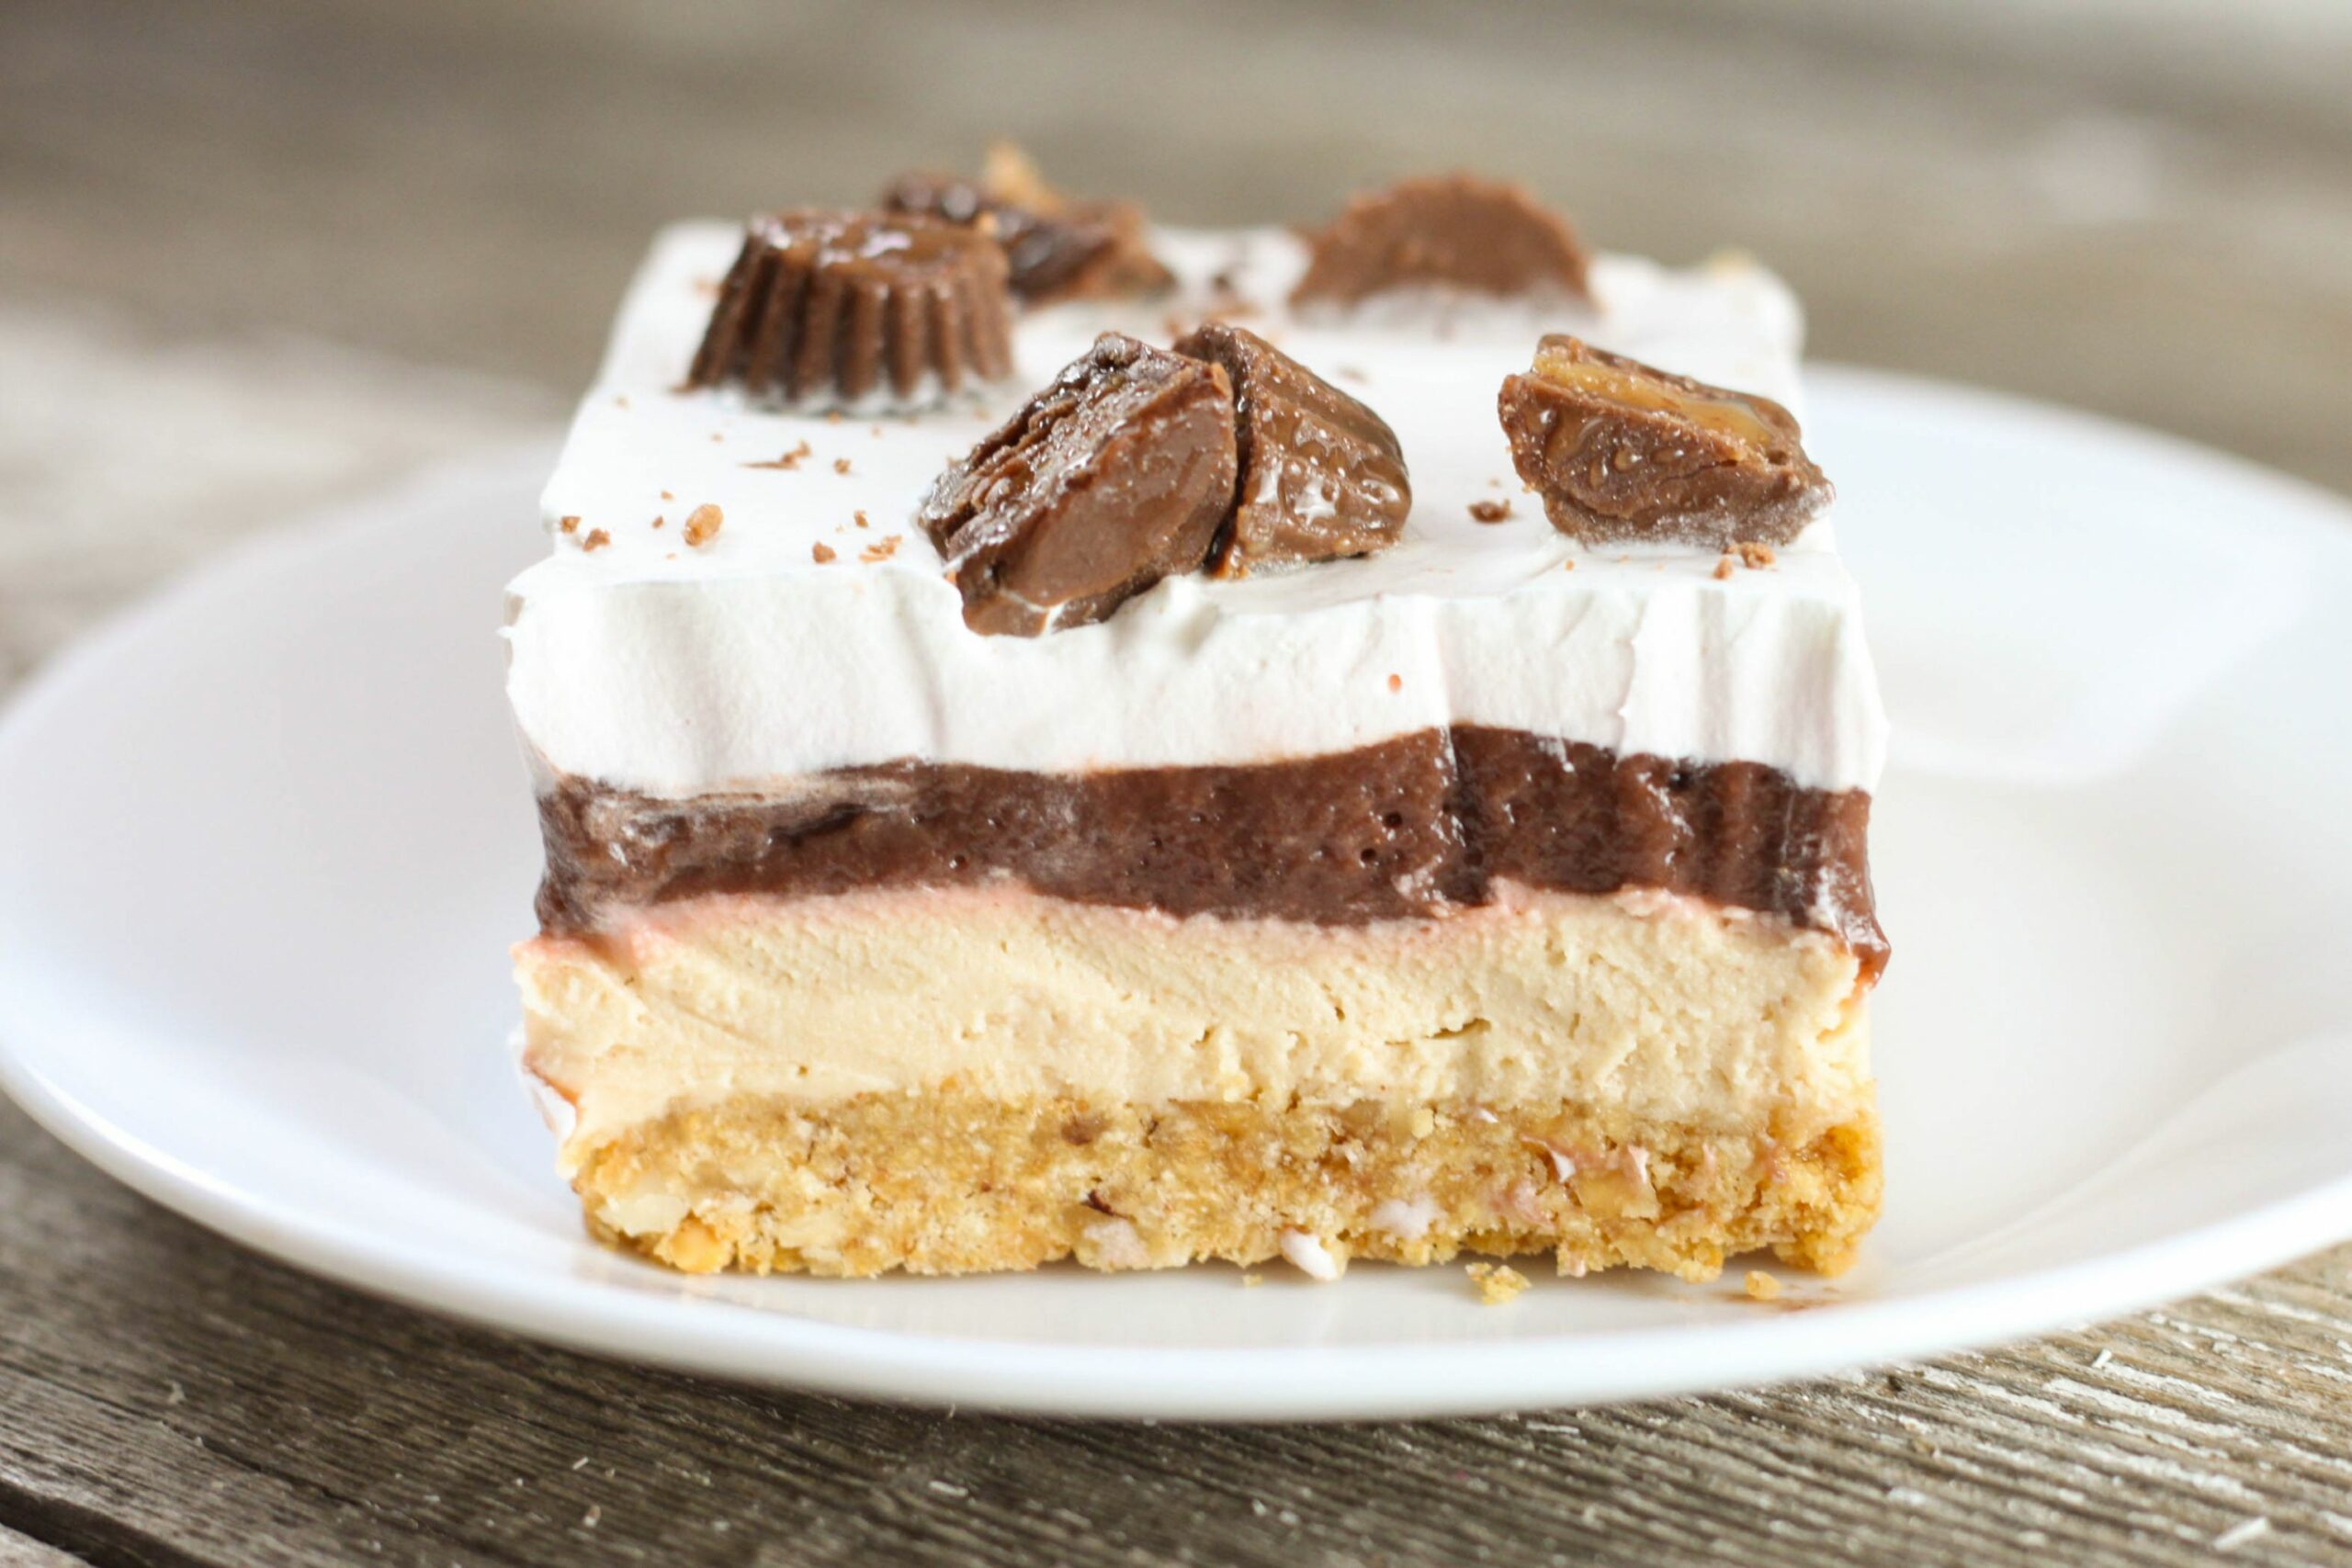 No Bake Chocolate Peanut Delight - Dessert Recipes Peanut Butter